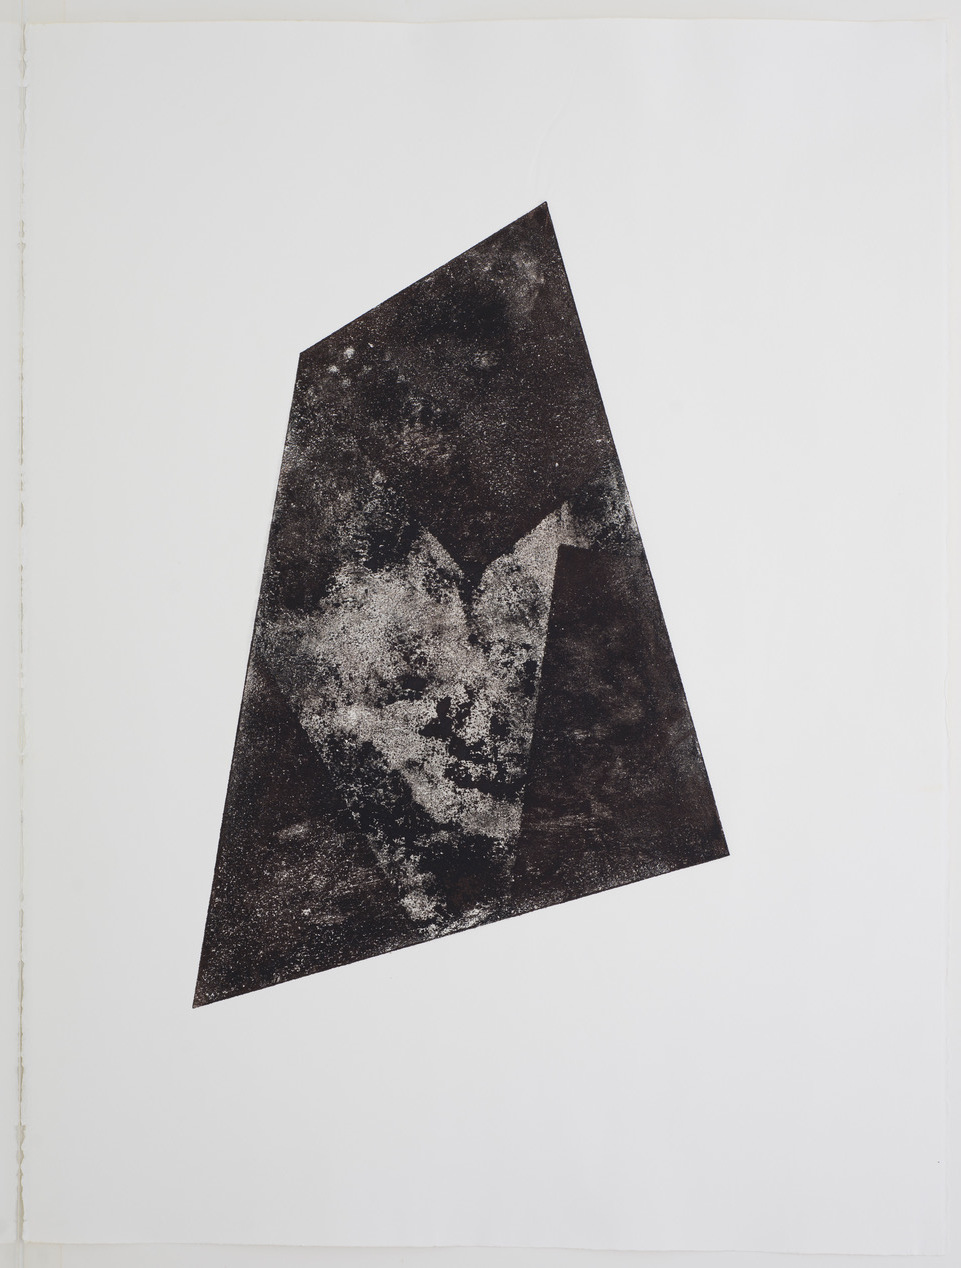 Luisa Duarte, Stone site, 2014. Monotype on paper, 30 x 22 x 0 in. Framed: 34 x 26 x 1.5 in